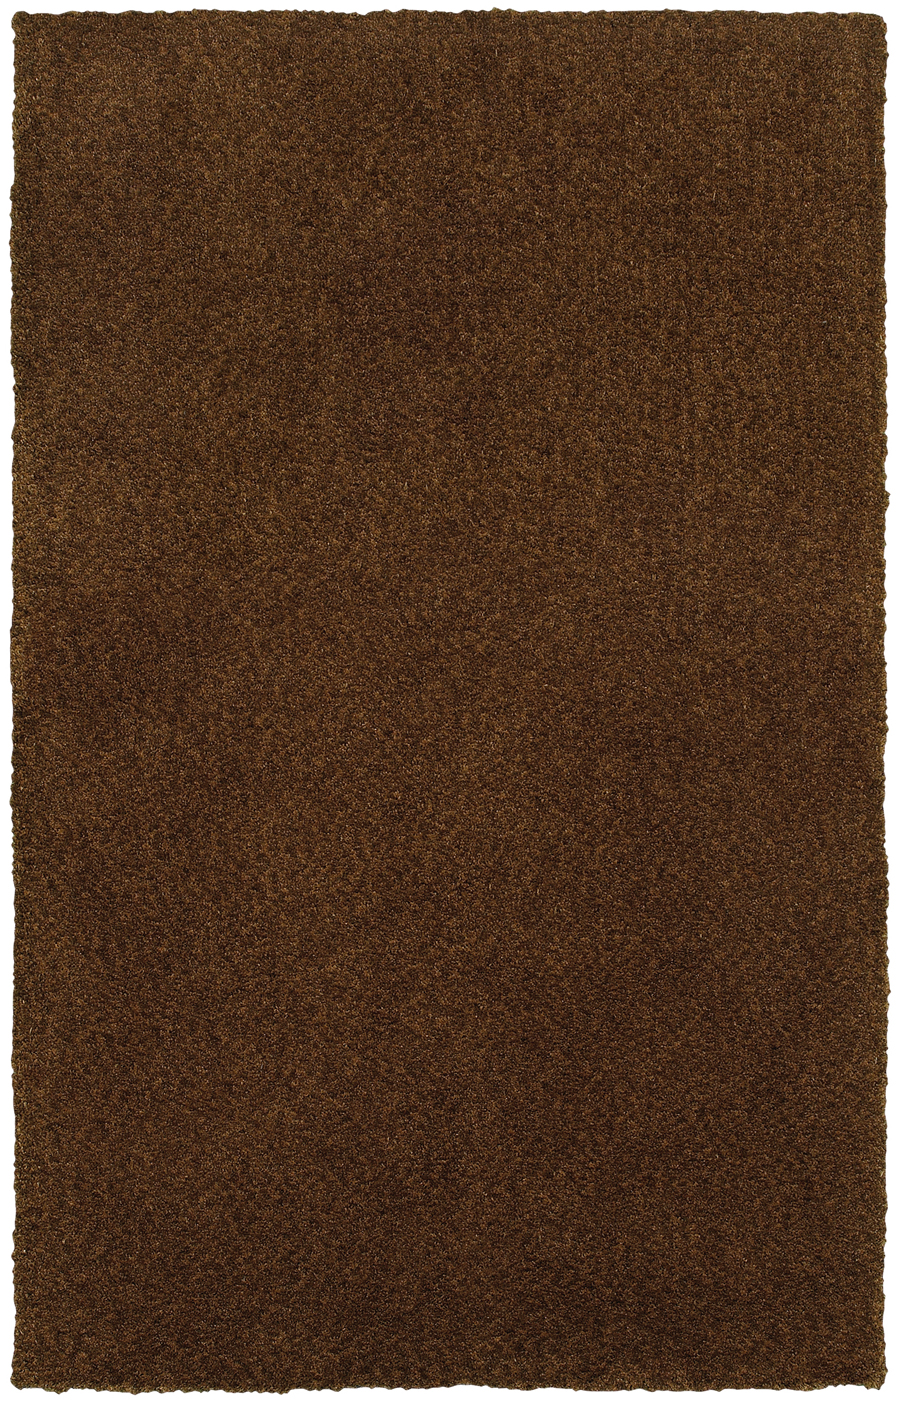 Oriental Weavers Sphinx Heavenly 73404 Rug